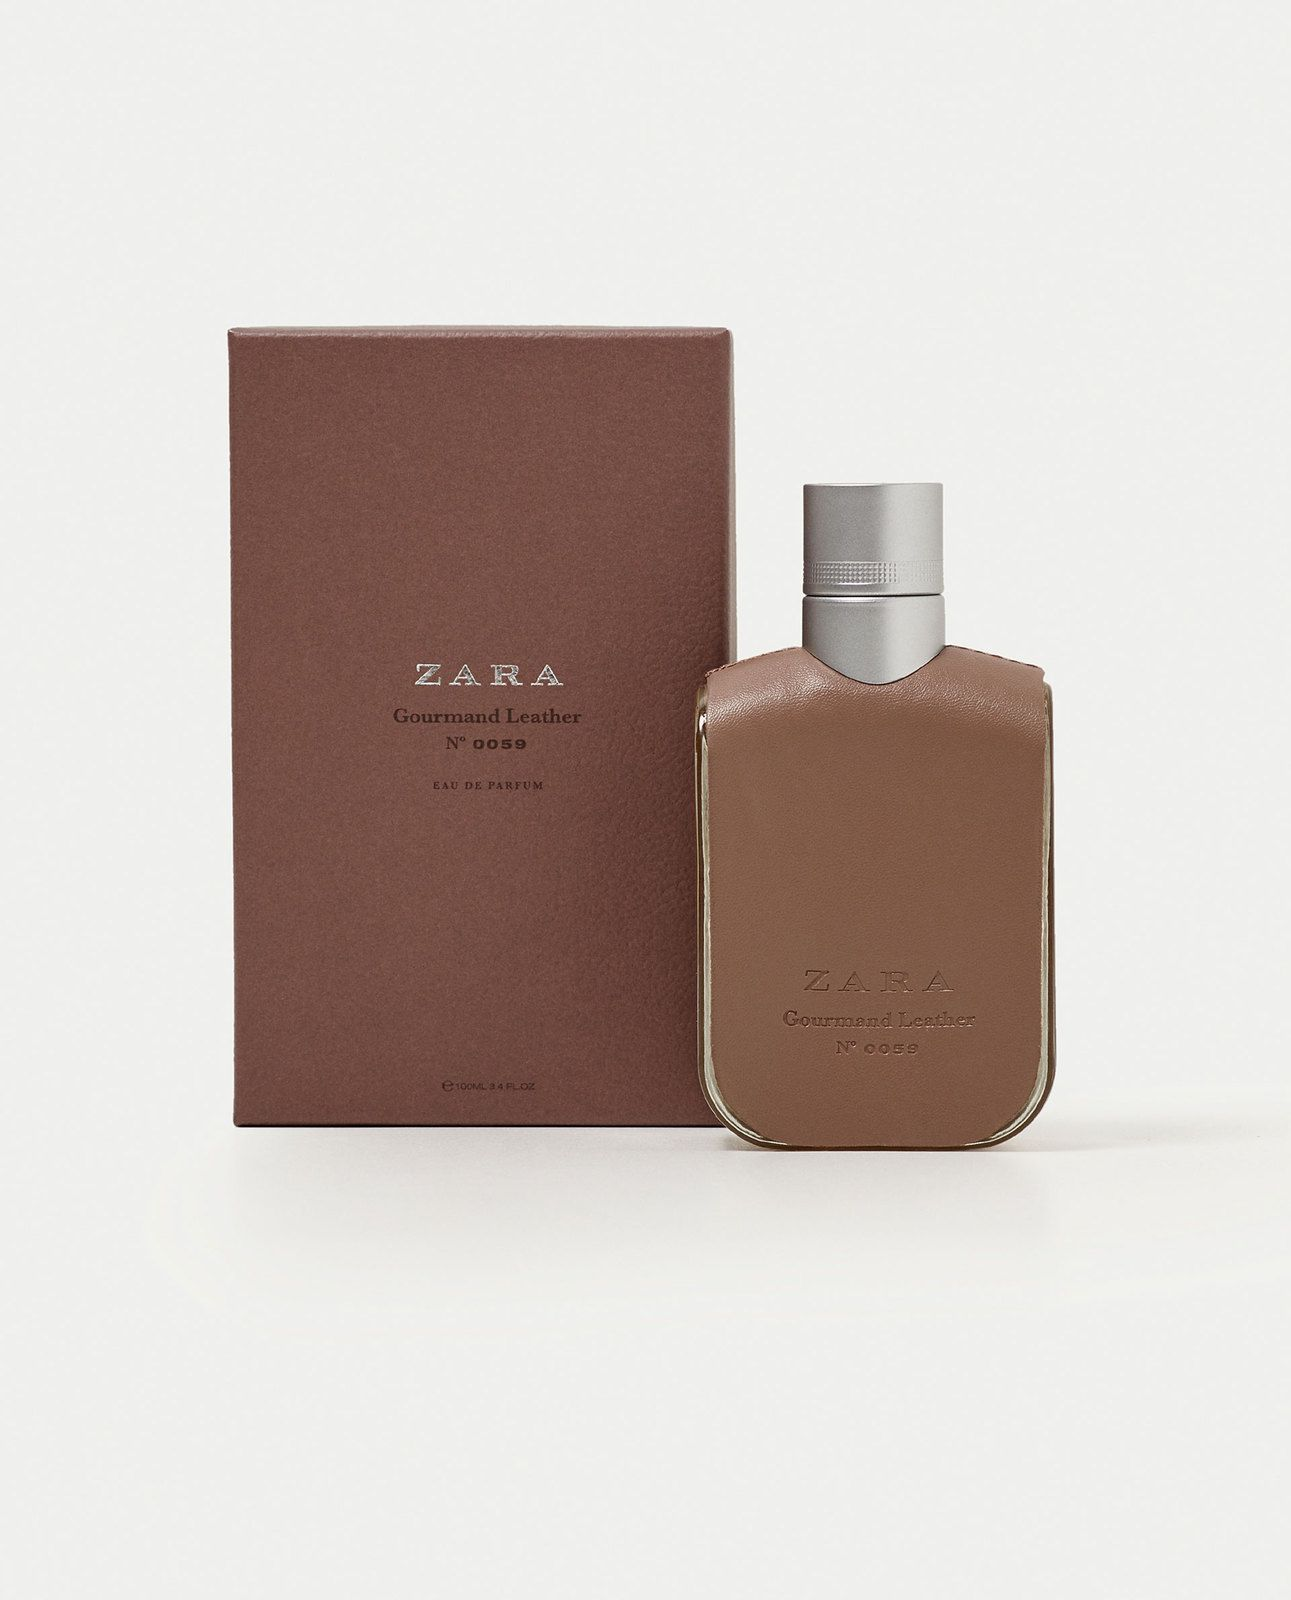 Zara Men Fragrances Gourmand Leather Nº 0059 Eau De Parfum 100ml